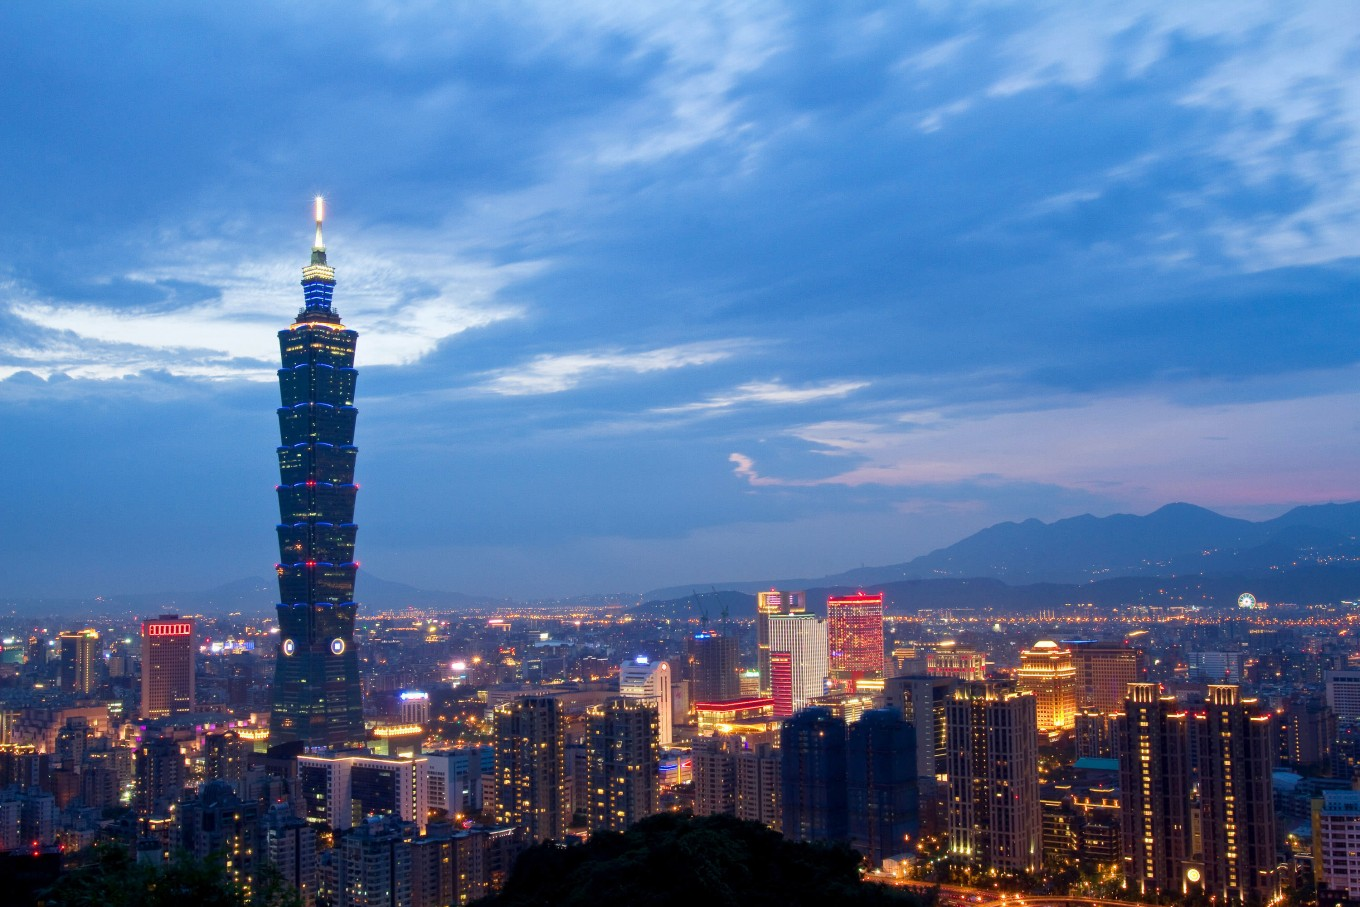 Taiwan is happiest nation in East Asia